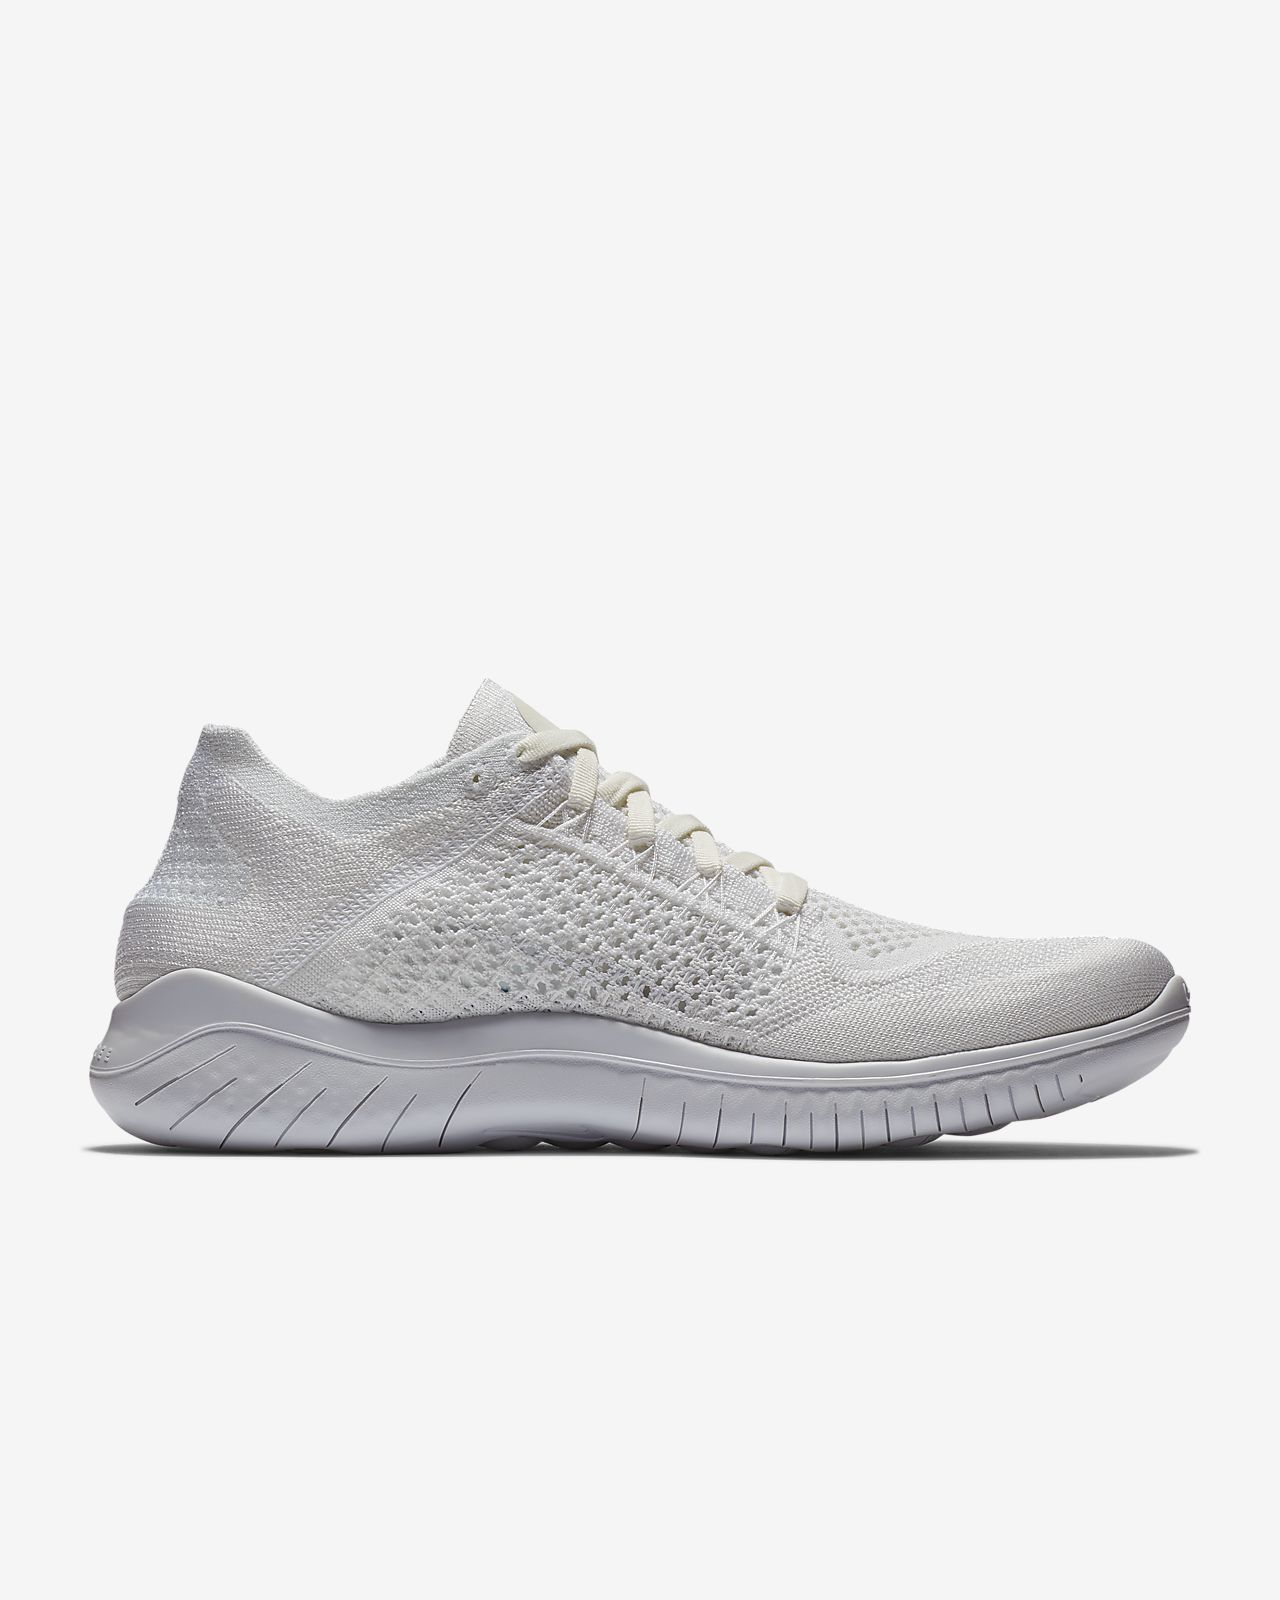 buy popular 72a12 b2c83 ... Nike Free RN Flyknit 2018 Men s Running Shoe